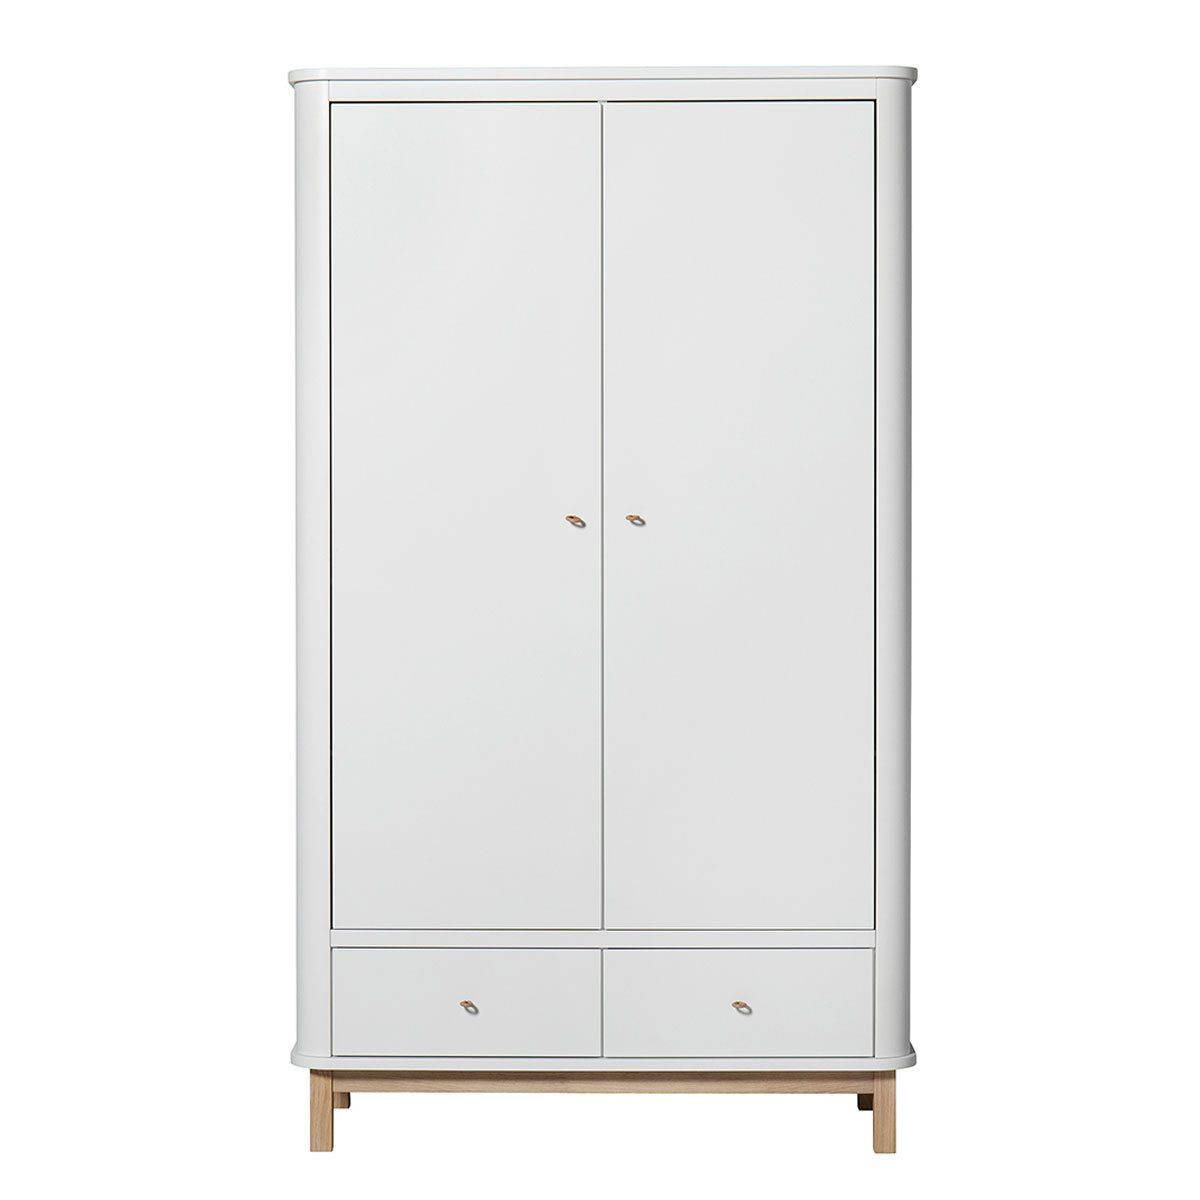 Oliver Furniture Kinderkledingkasten Wood white oak 2 deuren